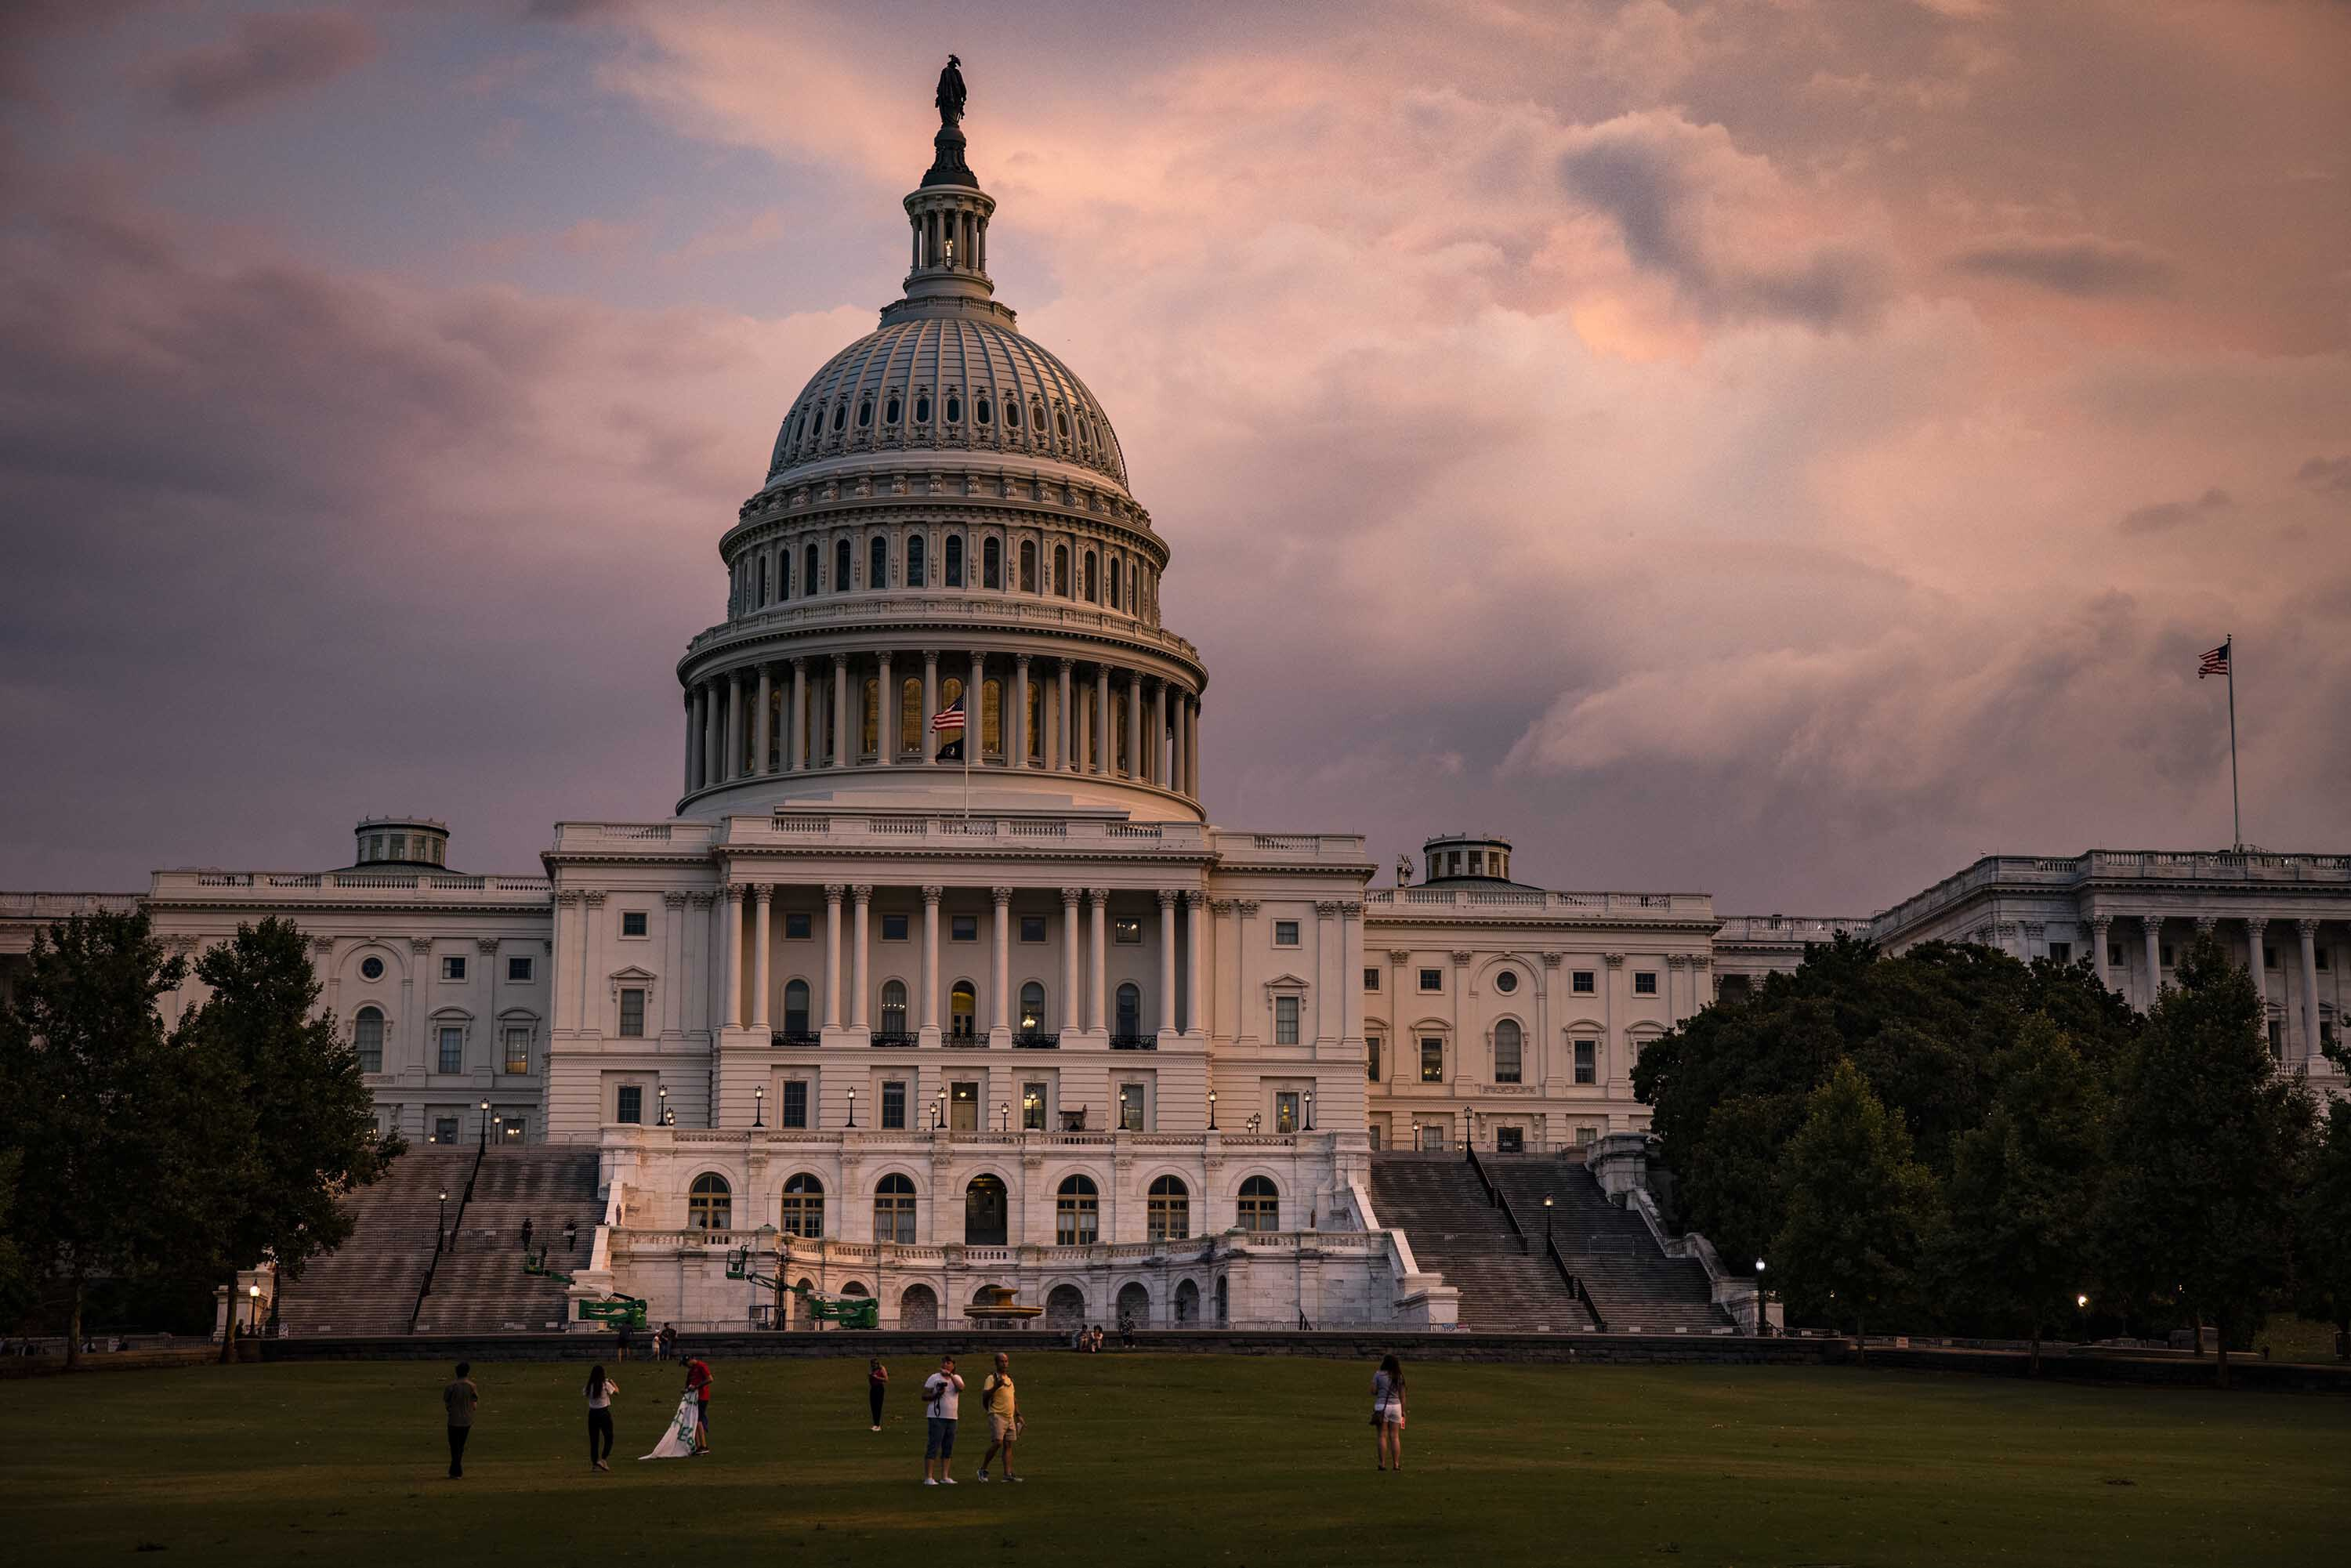 READ: Congressional Budget Office report on the bipartisan infrastructure plan and what it costs